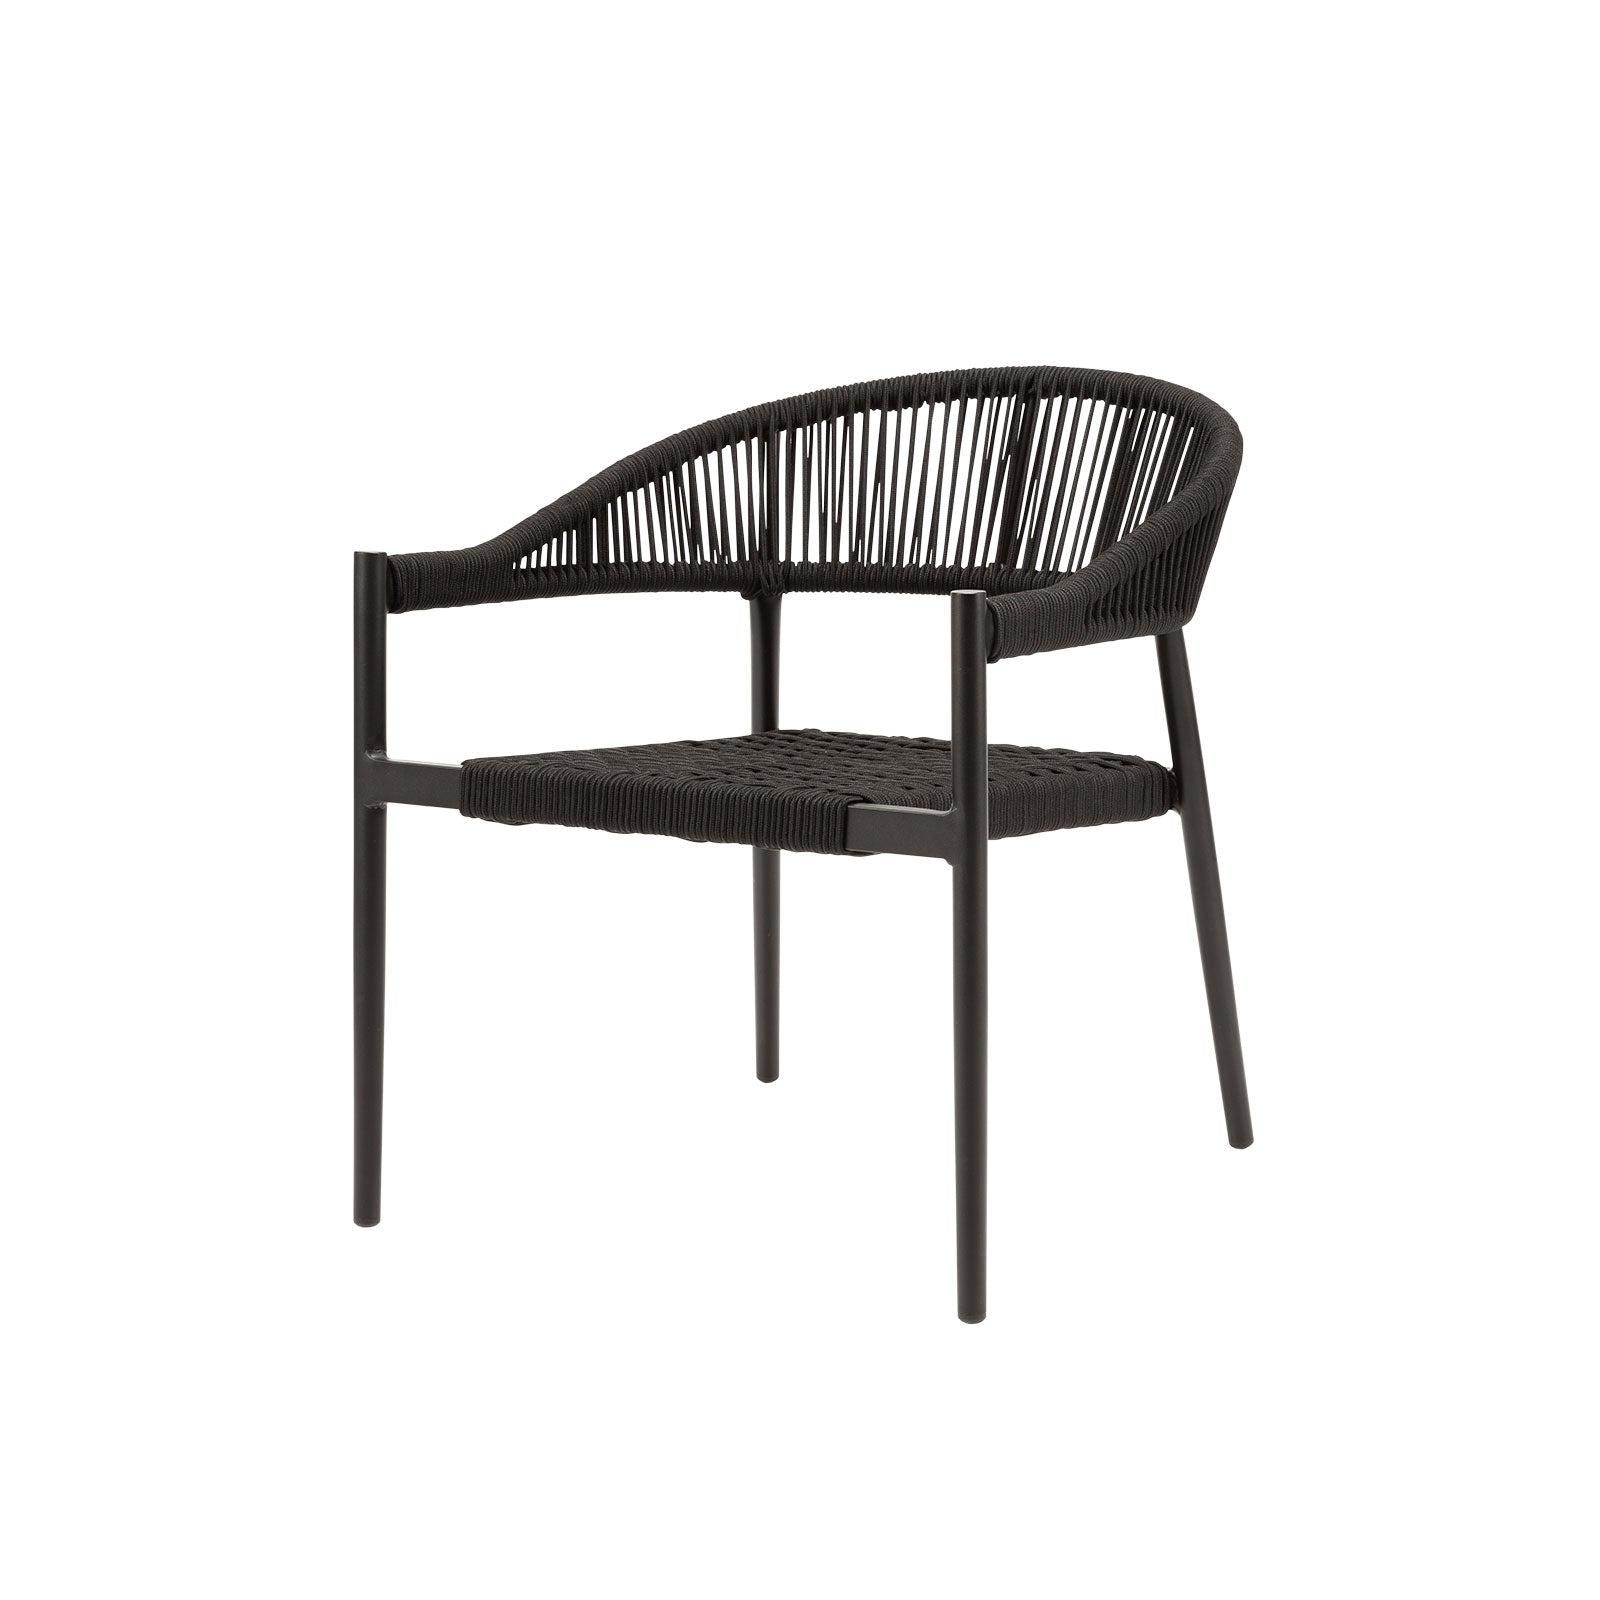 Source Furniture Source Furniture Skye Club Chair Club Chair - Rattan Imports